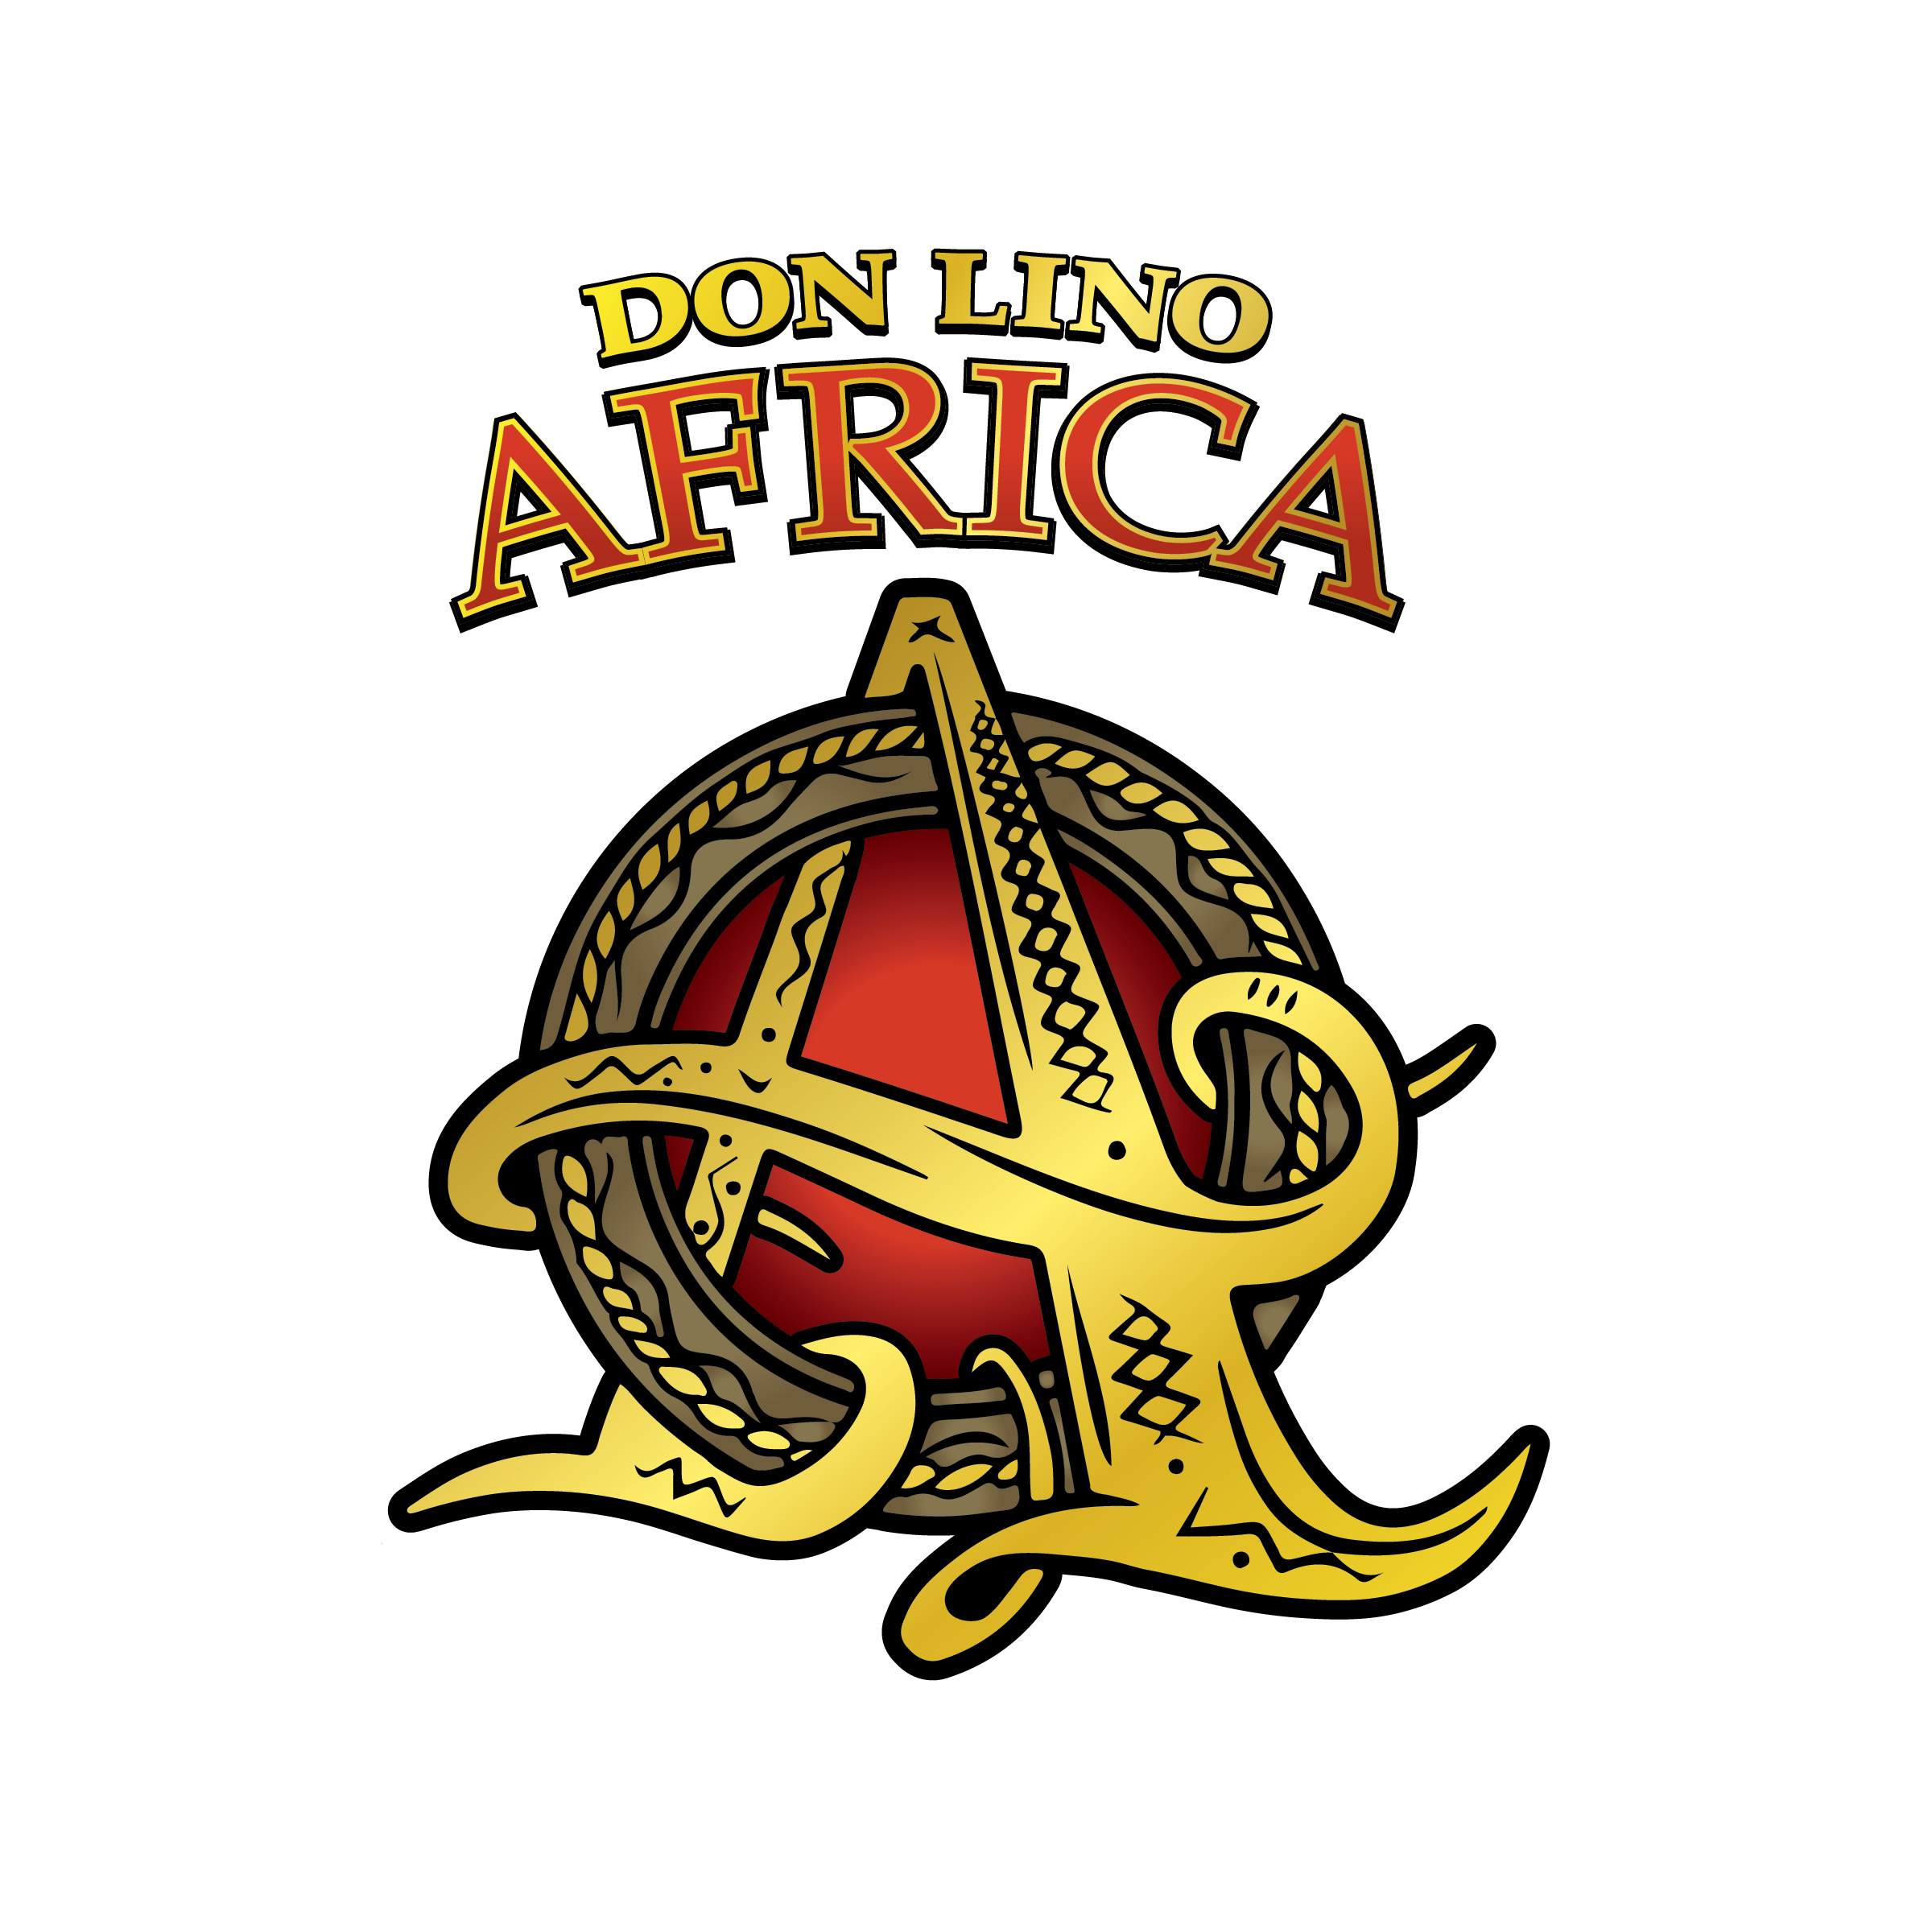 Cigar News: Miami Cigar & Company to Begin Shipping Don Lino Africa November 18th